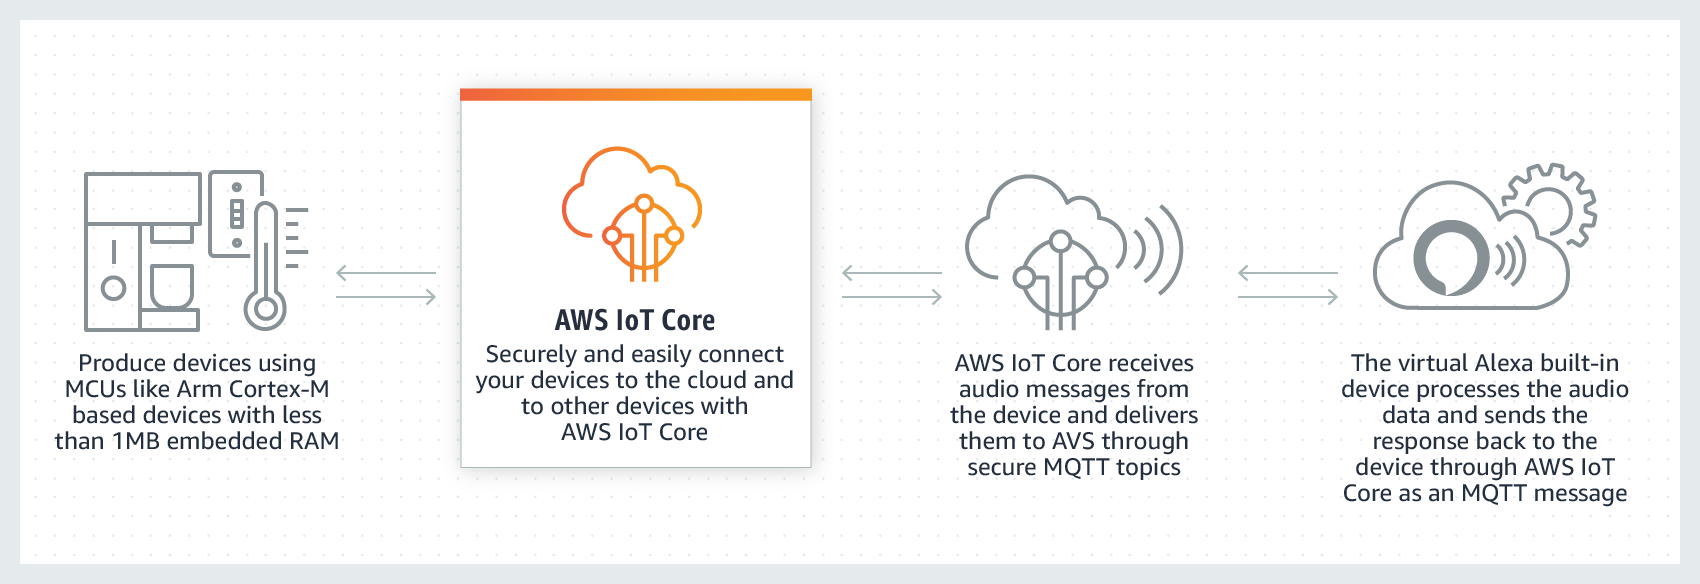 Usar o AWS IoT Core para ler e definir o estado do dispositivo